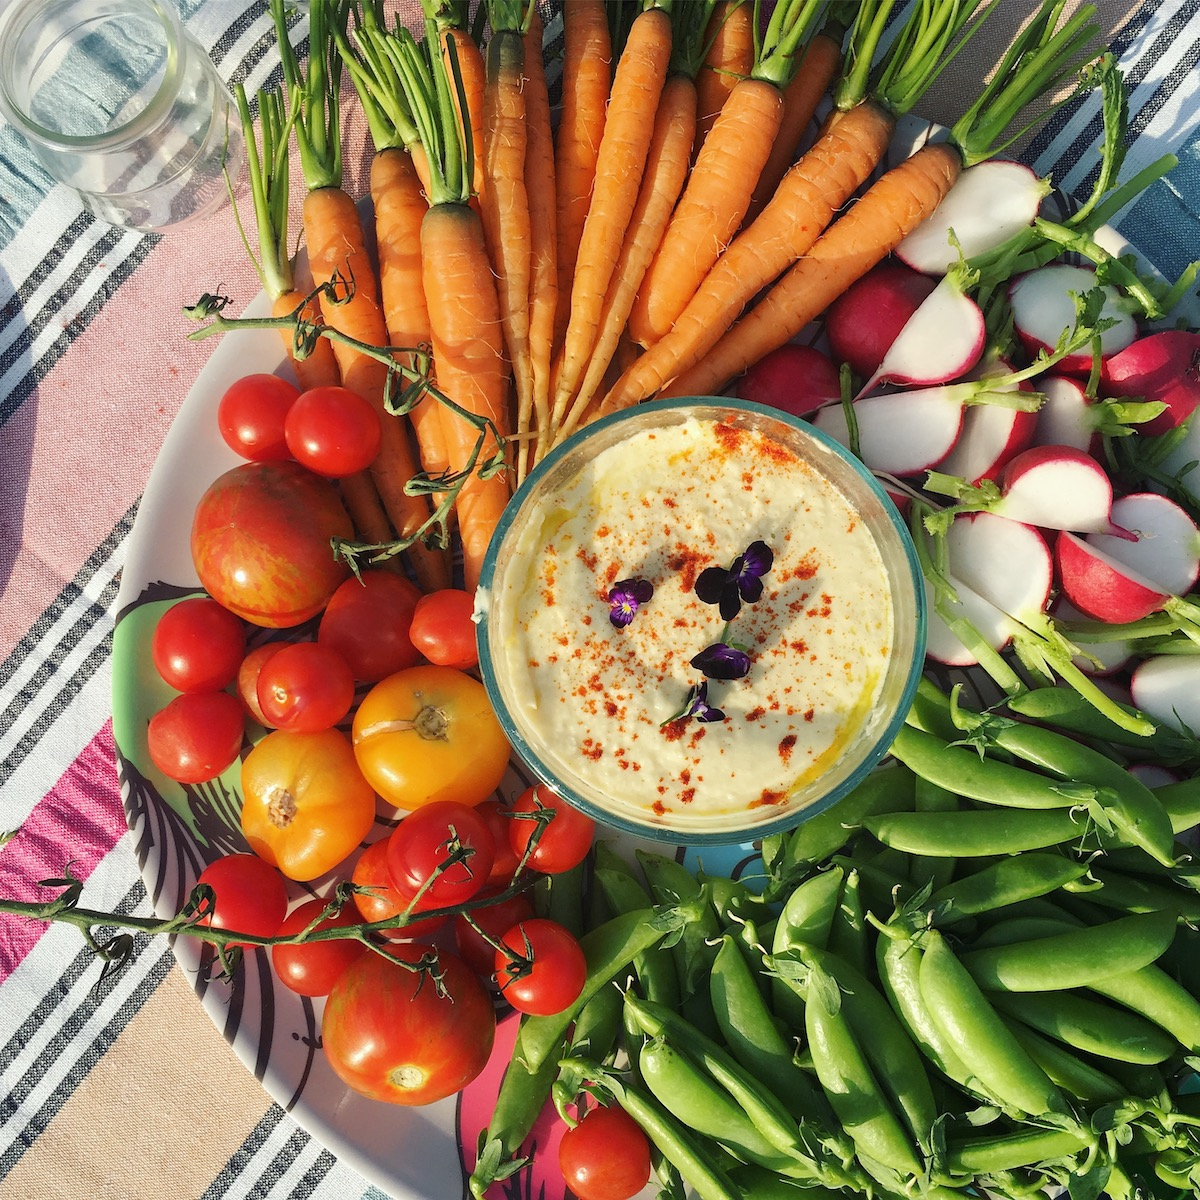 An easy Hearts of Palm dip recipe that yields a lighter, tangier and totally addictive version of hummus | Stacie Billis